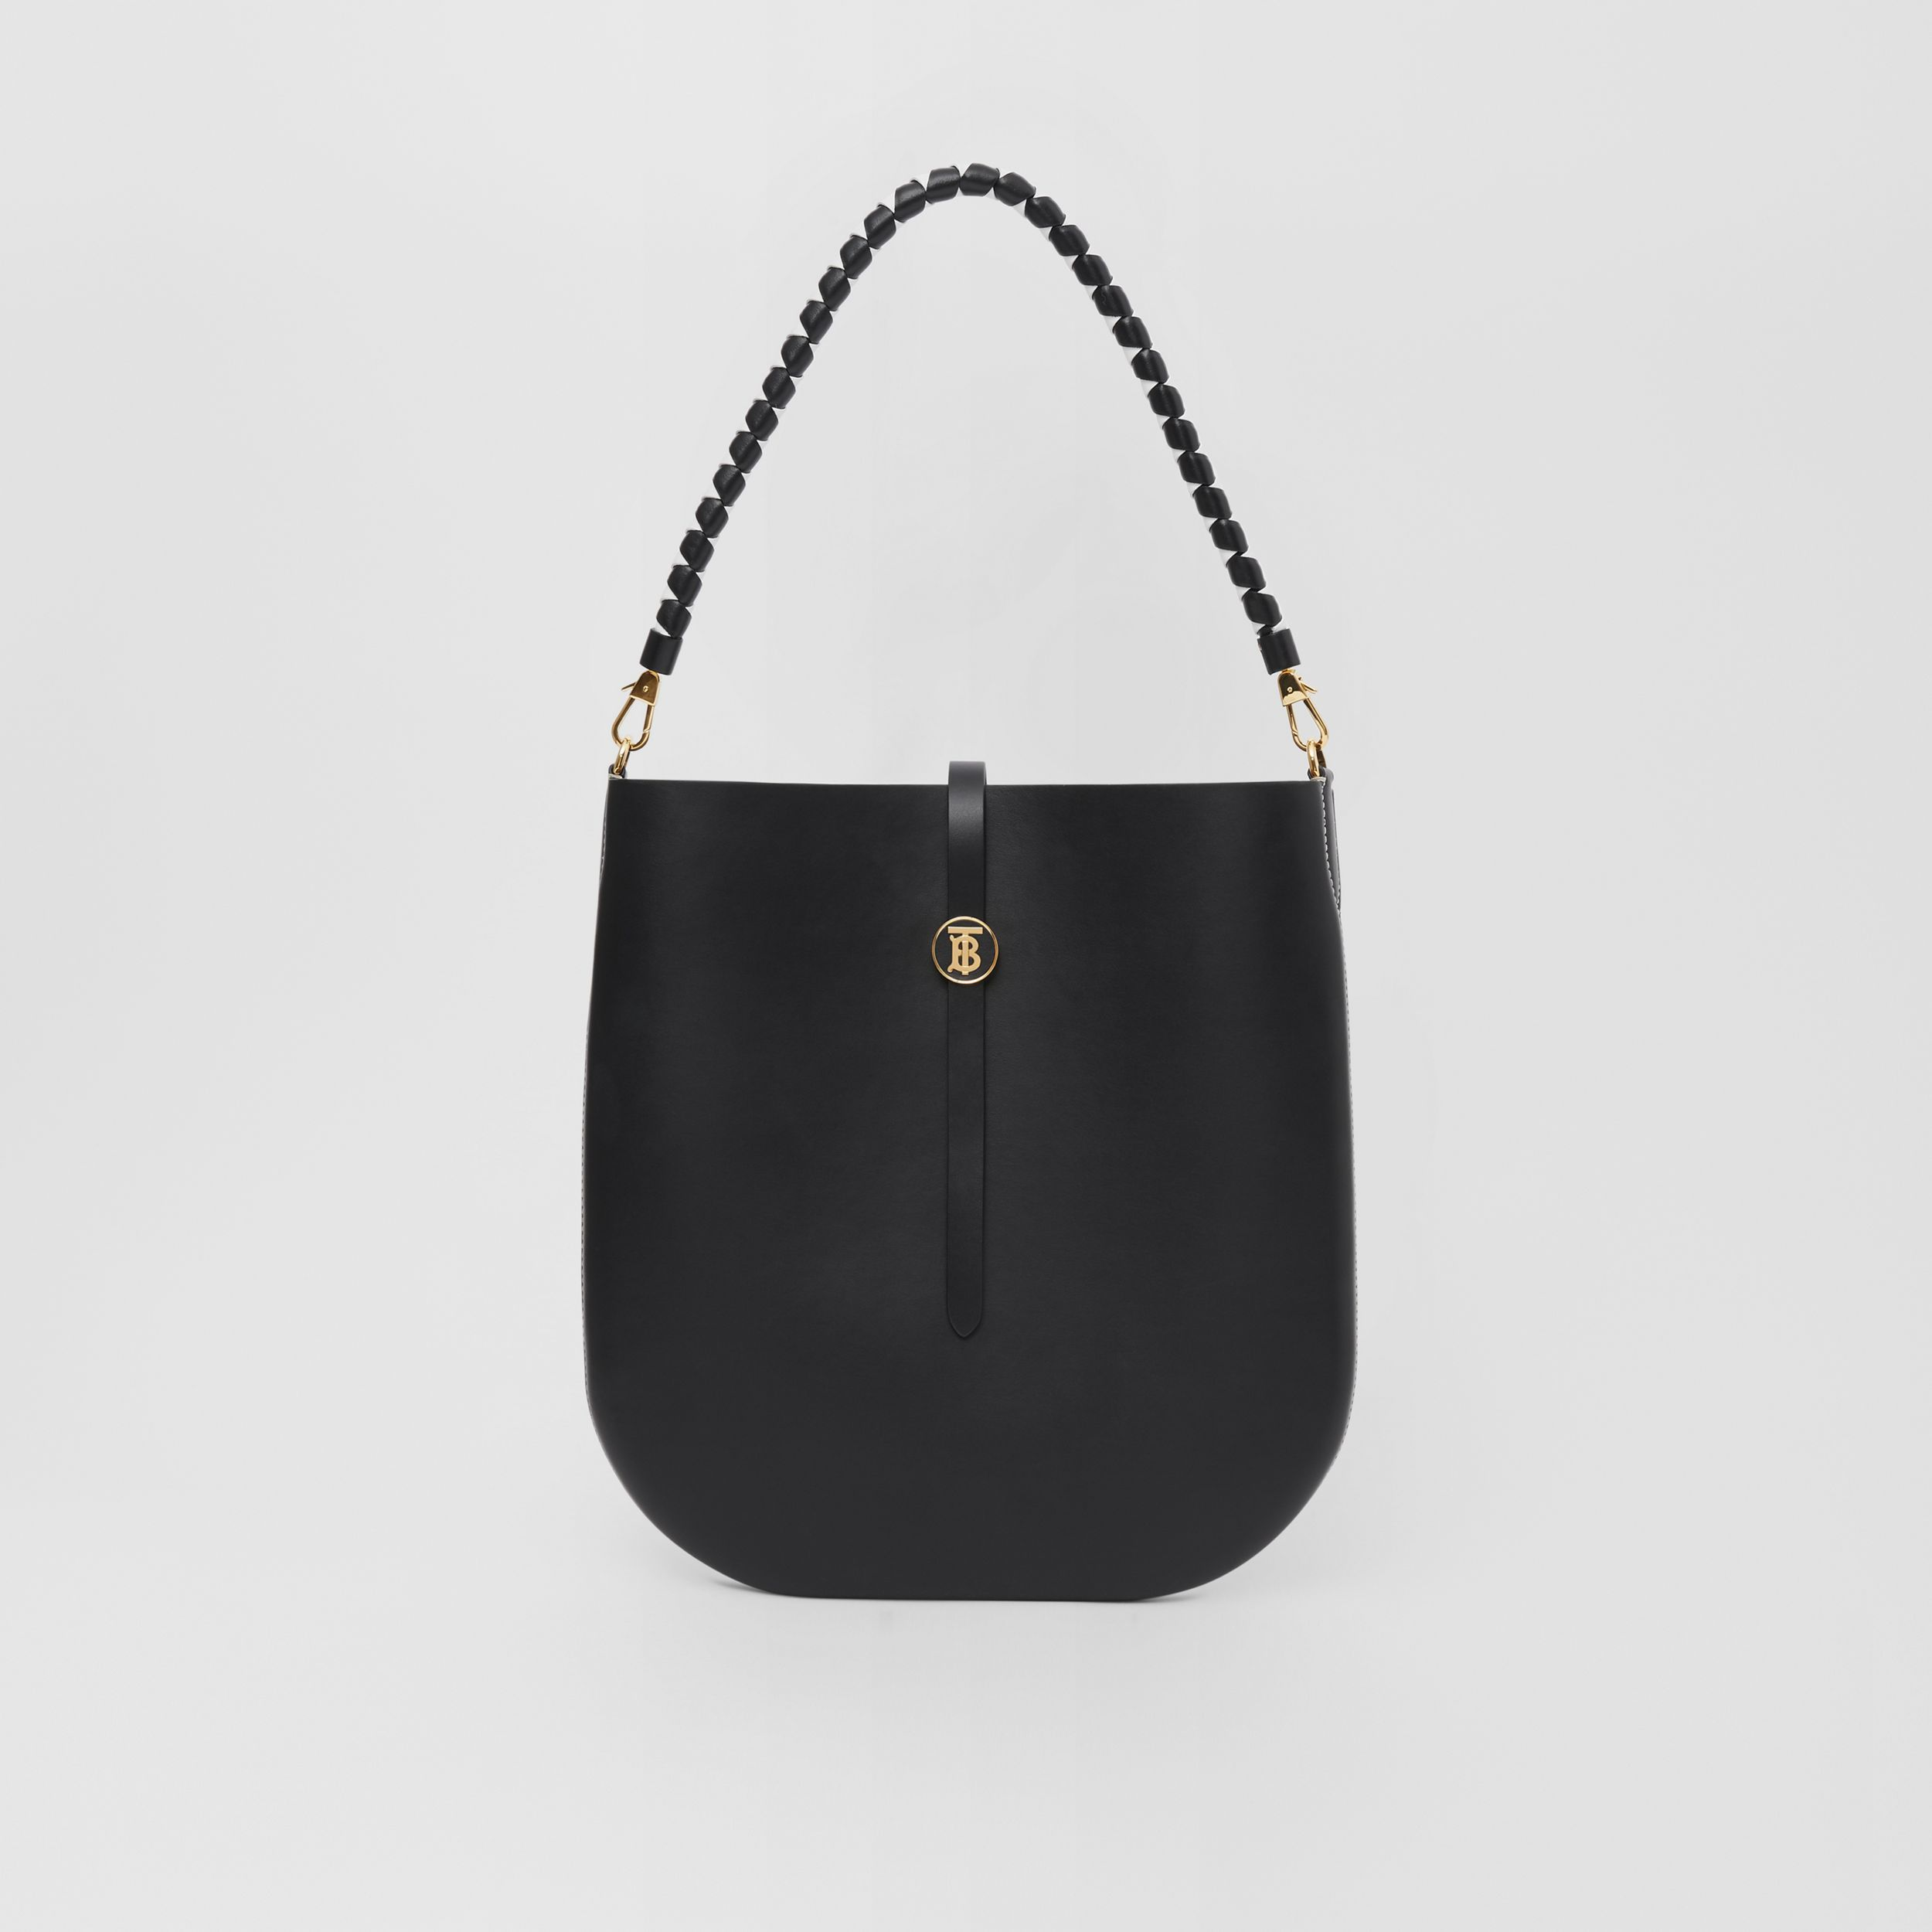 Leather Anne Bag in Black - Women | Burberry - 1